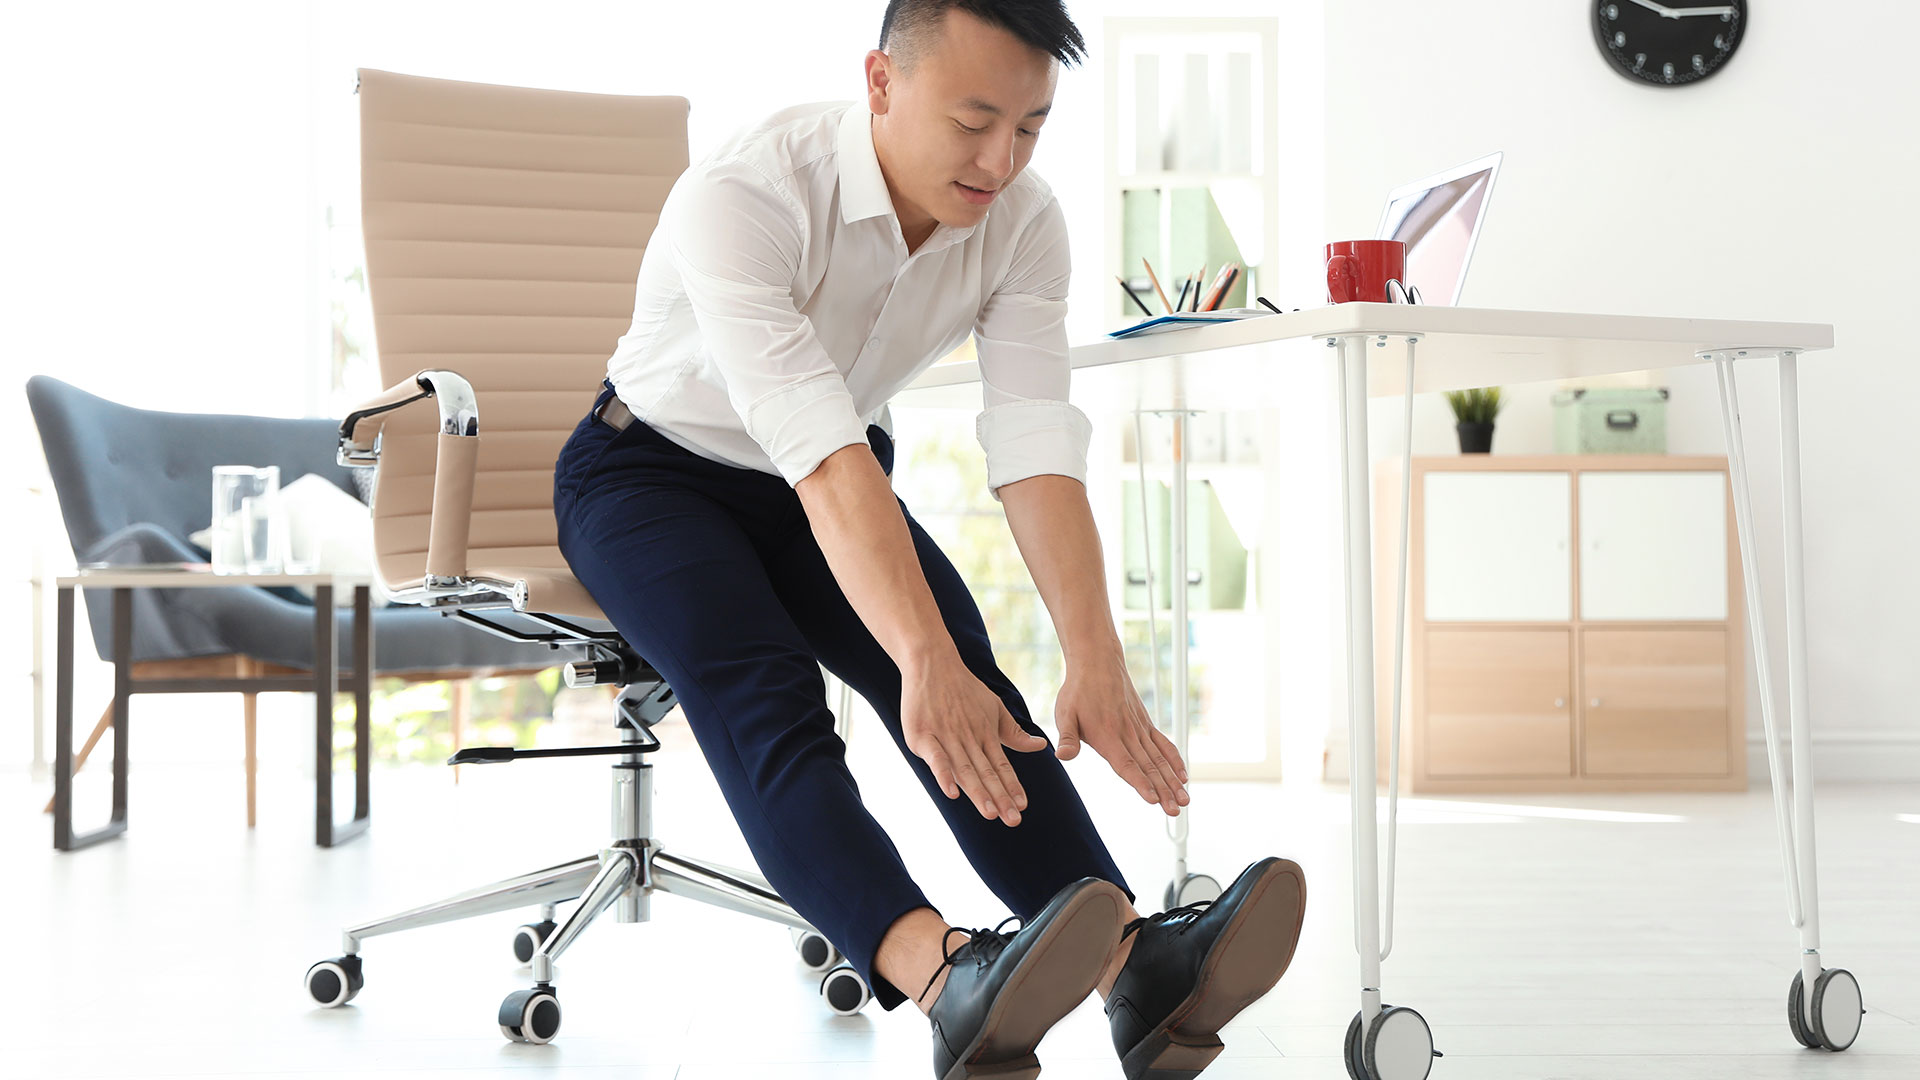 Man sits at the edge of his office chair and reaches his hands out to touch his toes with legs extended.